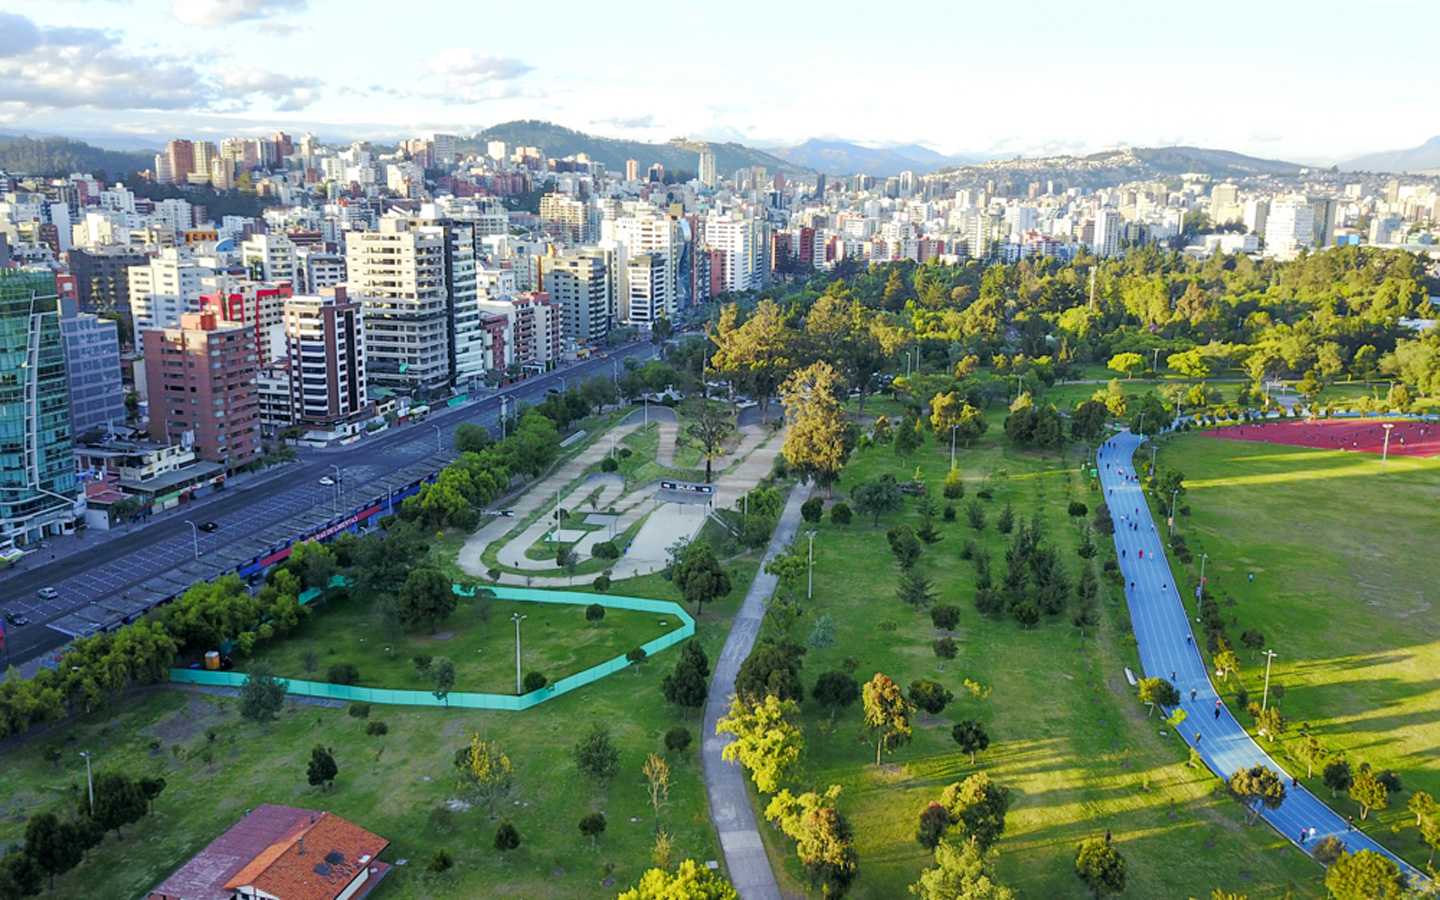 An airial view of the Parque Carolina of Quito